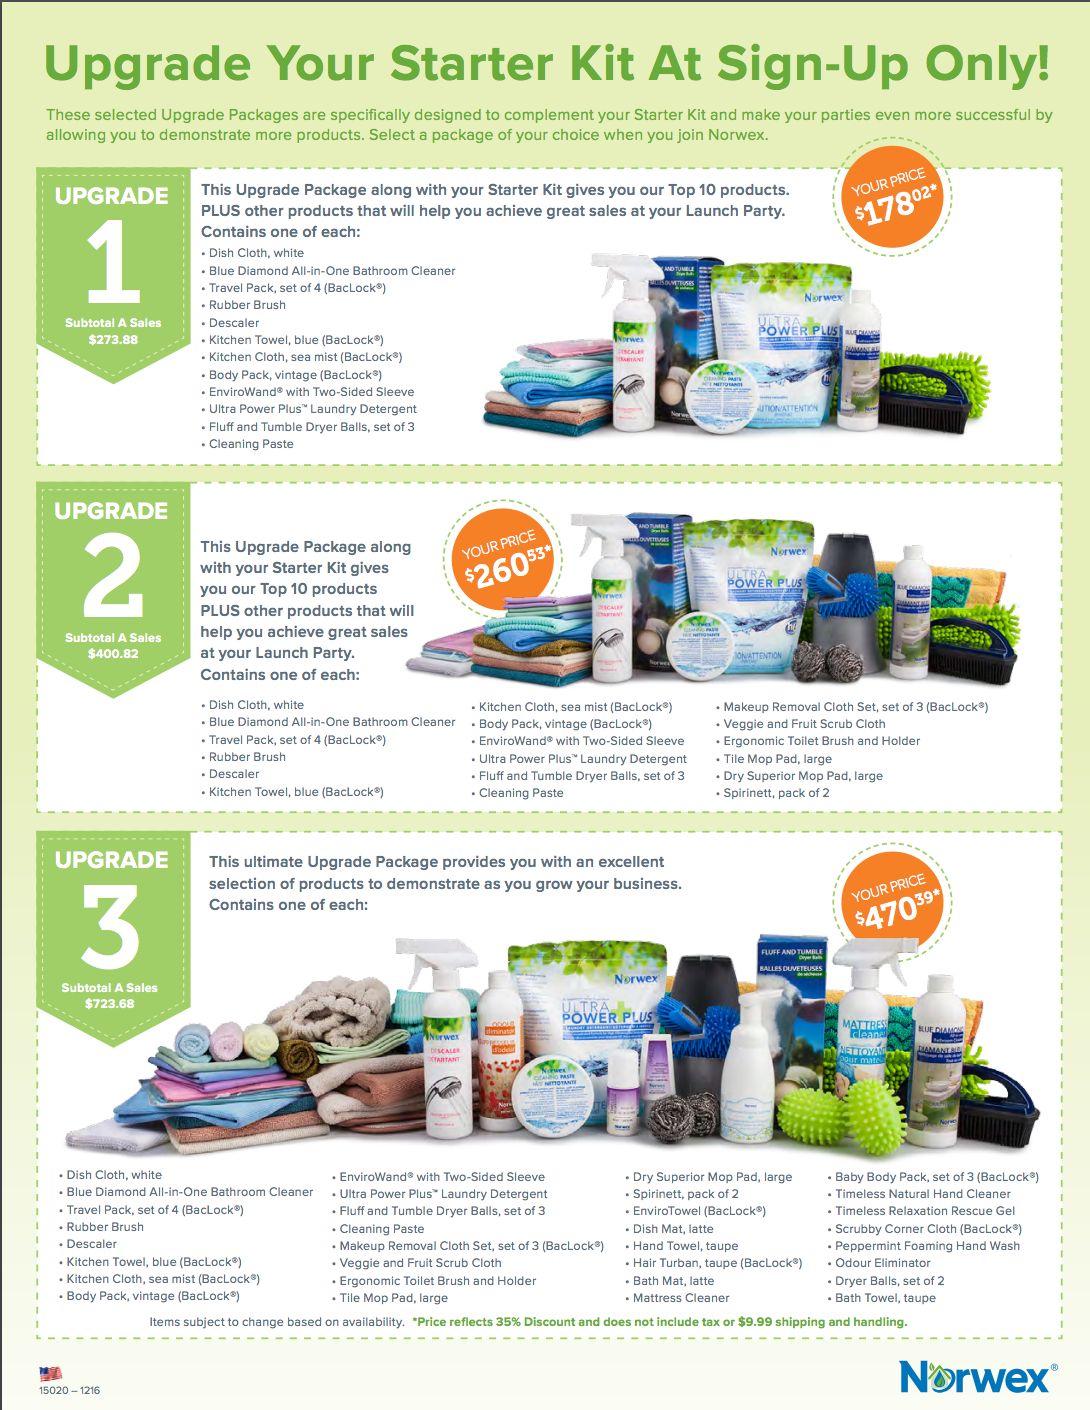 Norwex_Starter_Kit_Upgrade_Packages